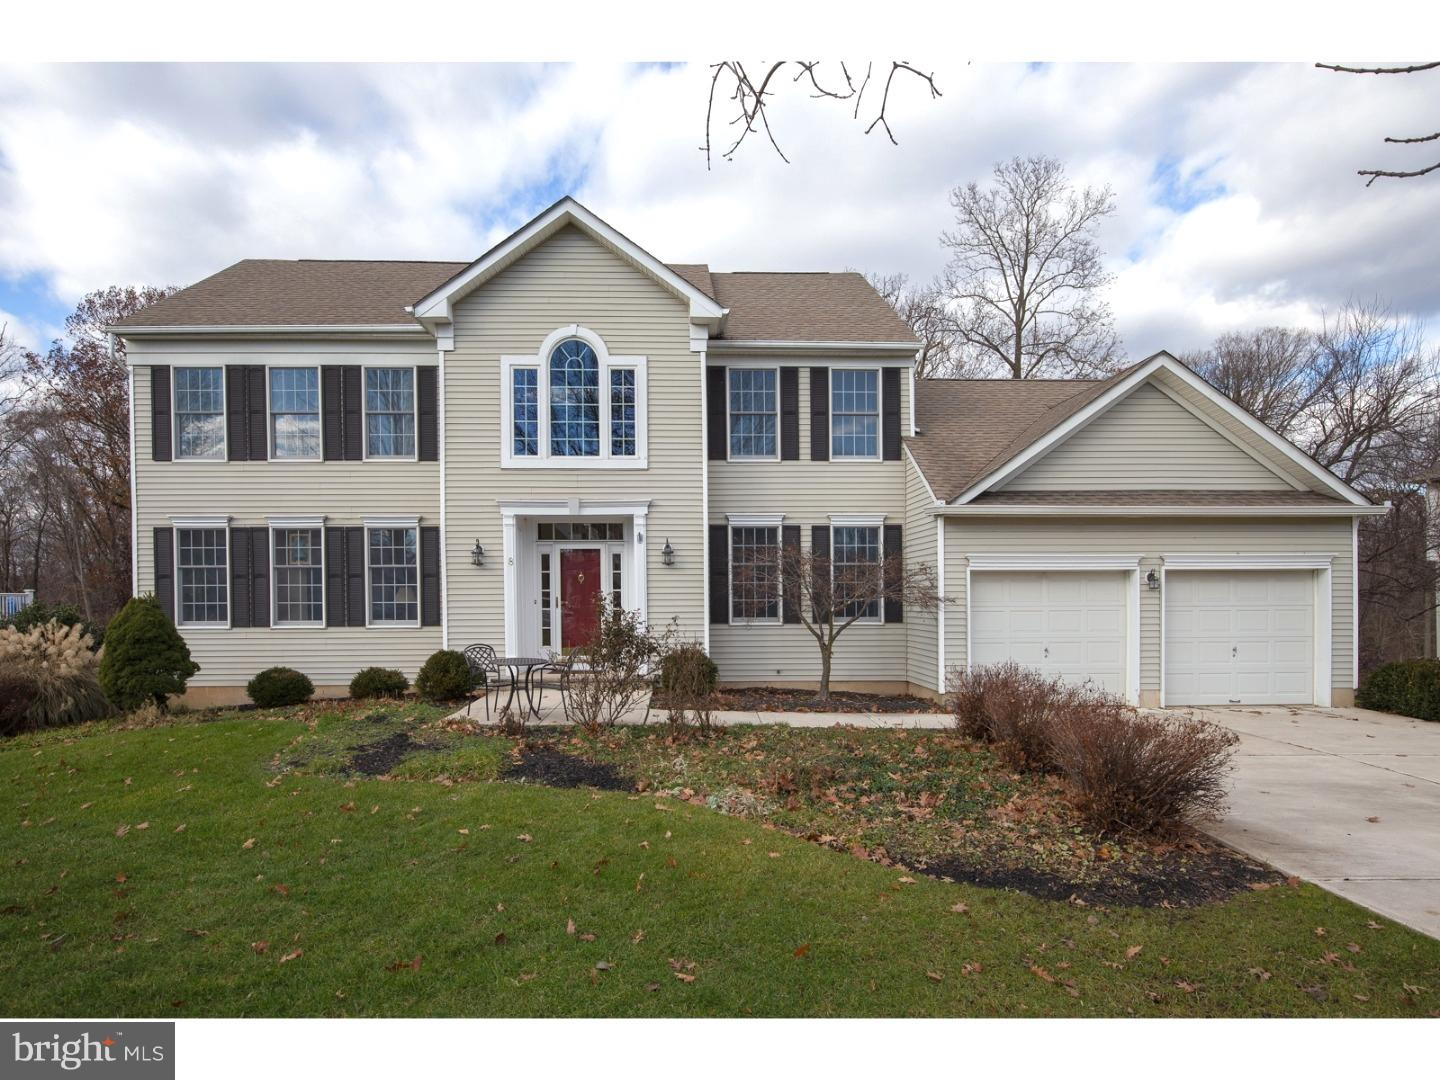 8 ASHWOOD CT, LAWRENCEVILLE, NJ 08648